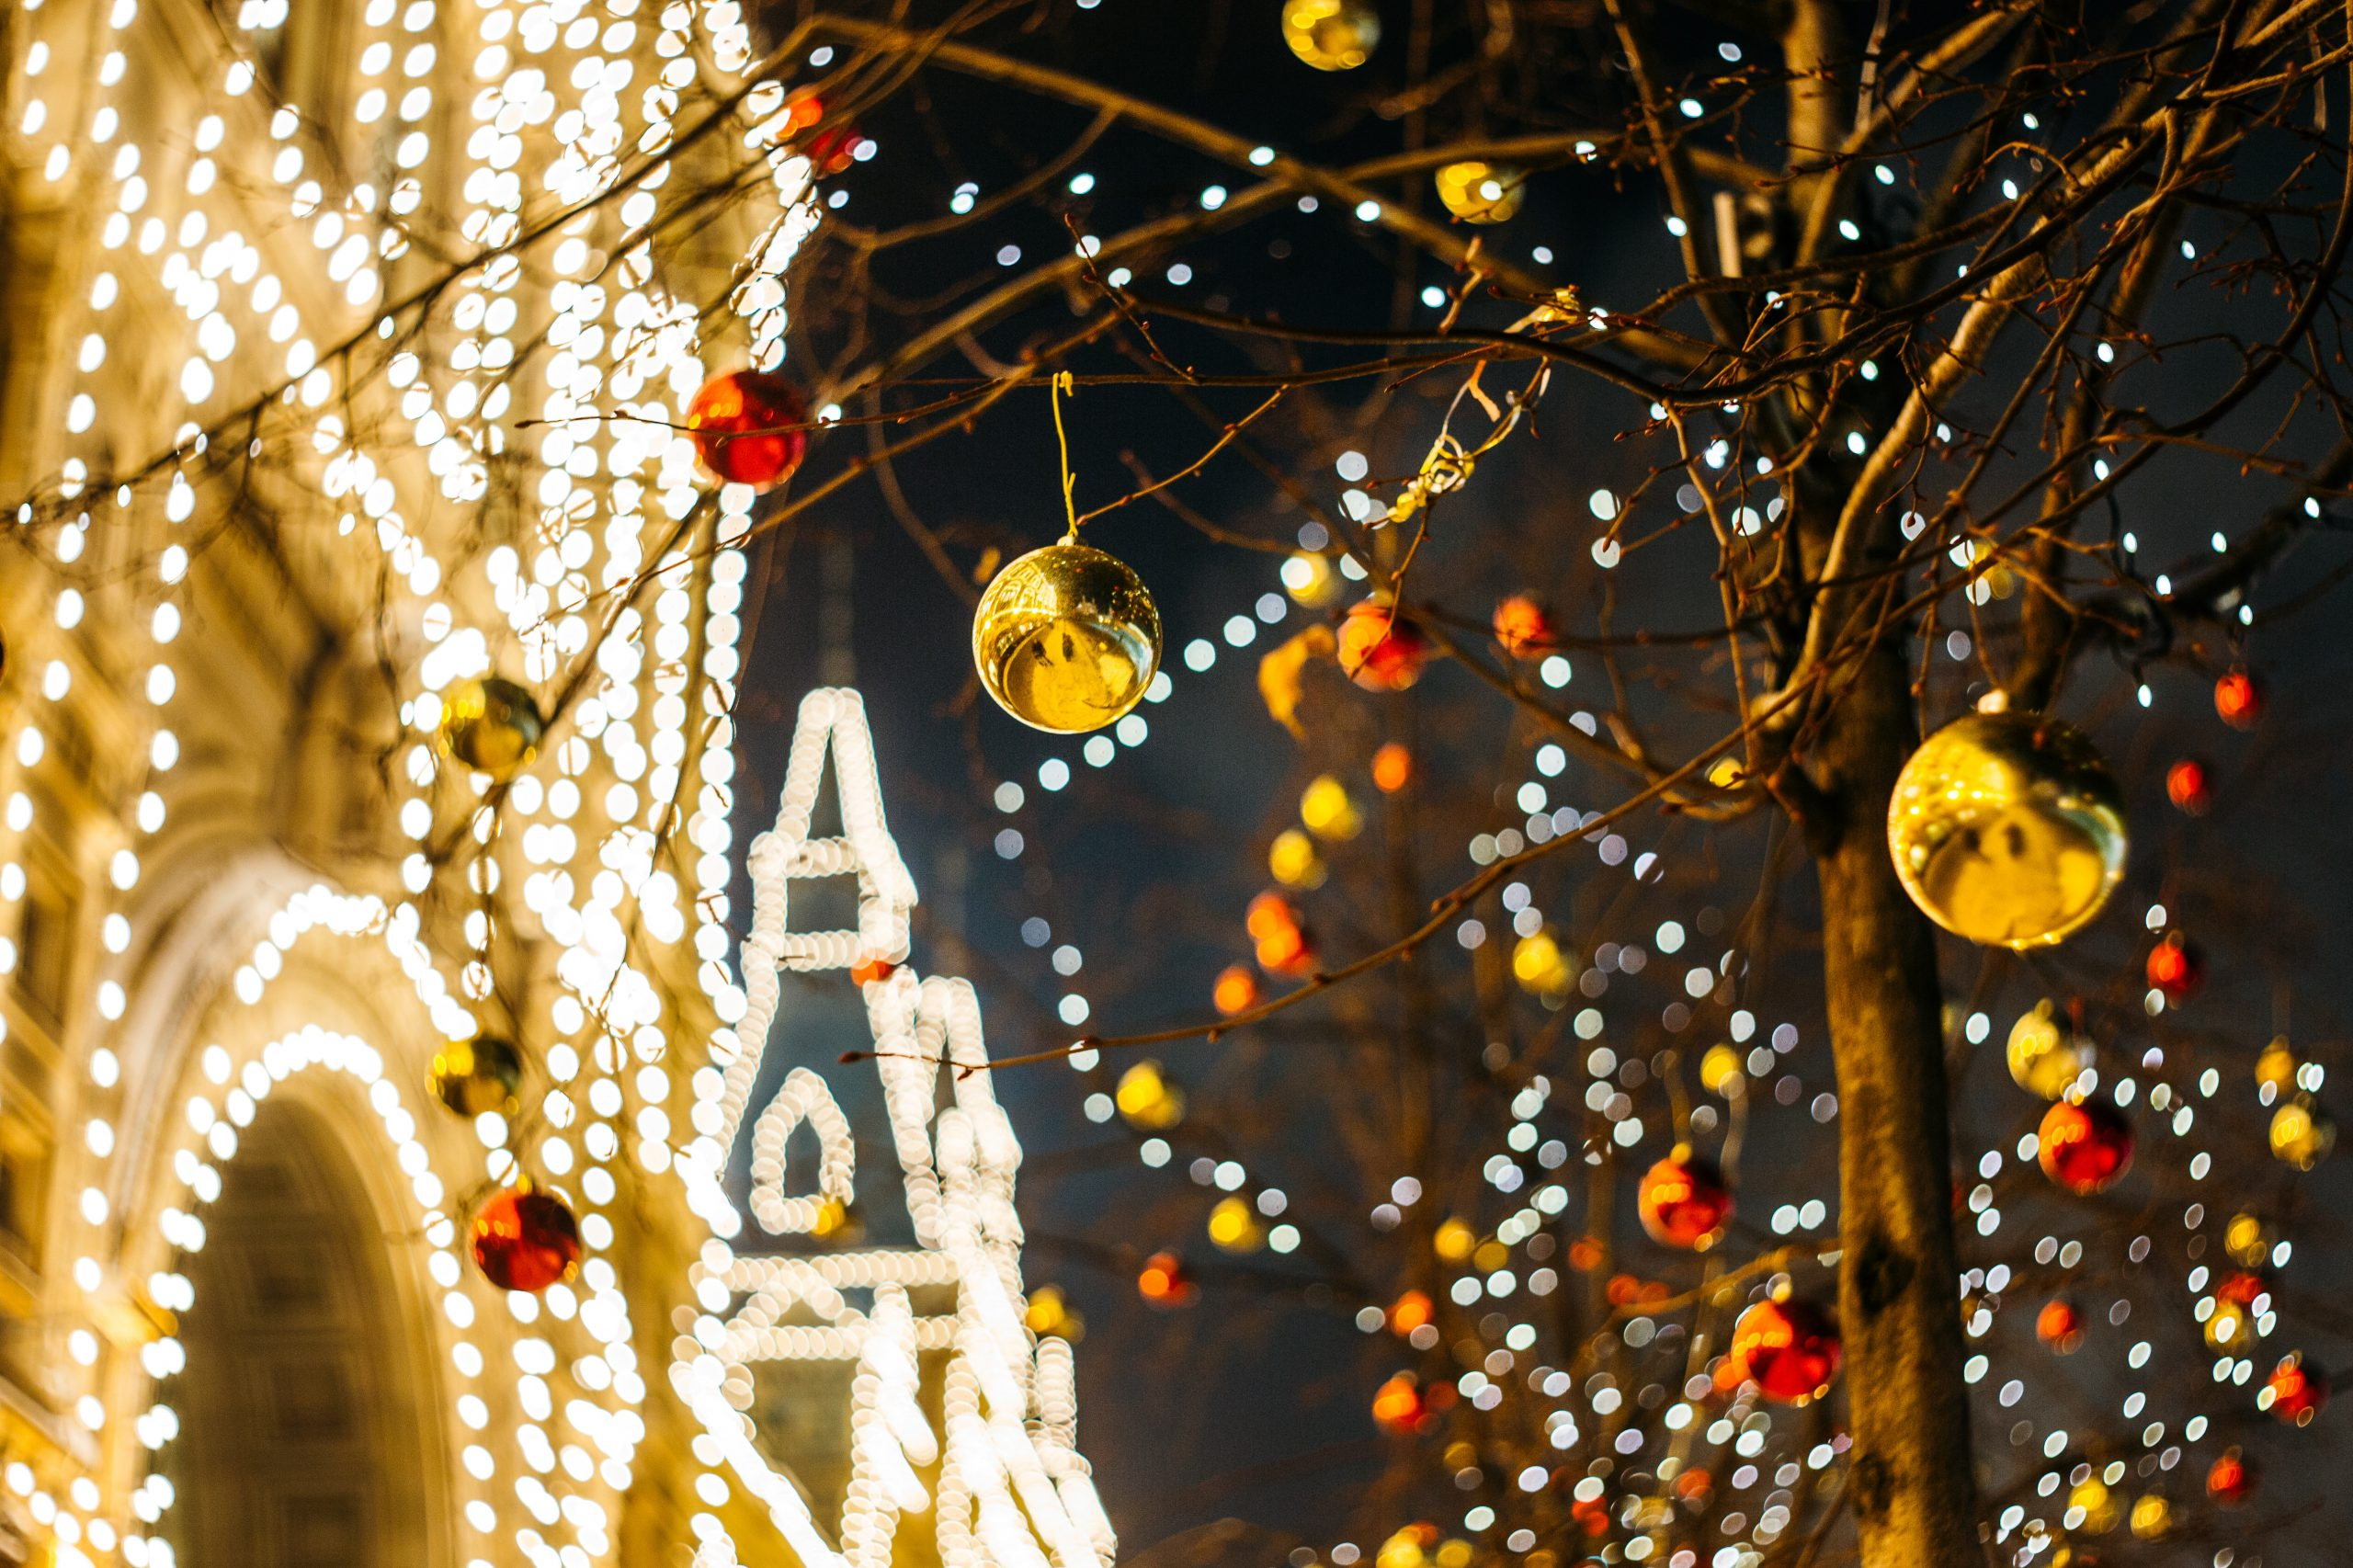 Wintertime picture of a tree with gold and red ornaments hanging from it and to the left is a building completely covered in white lights